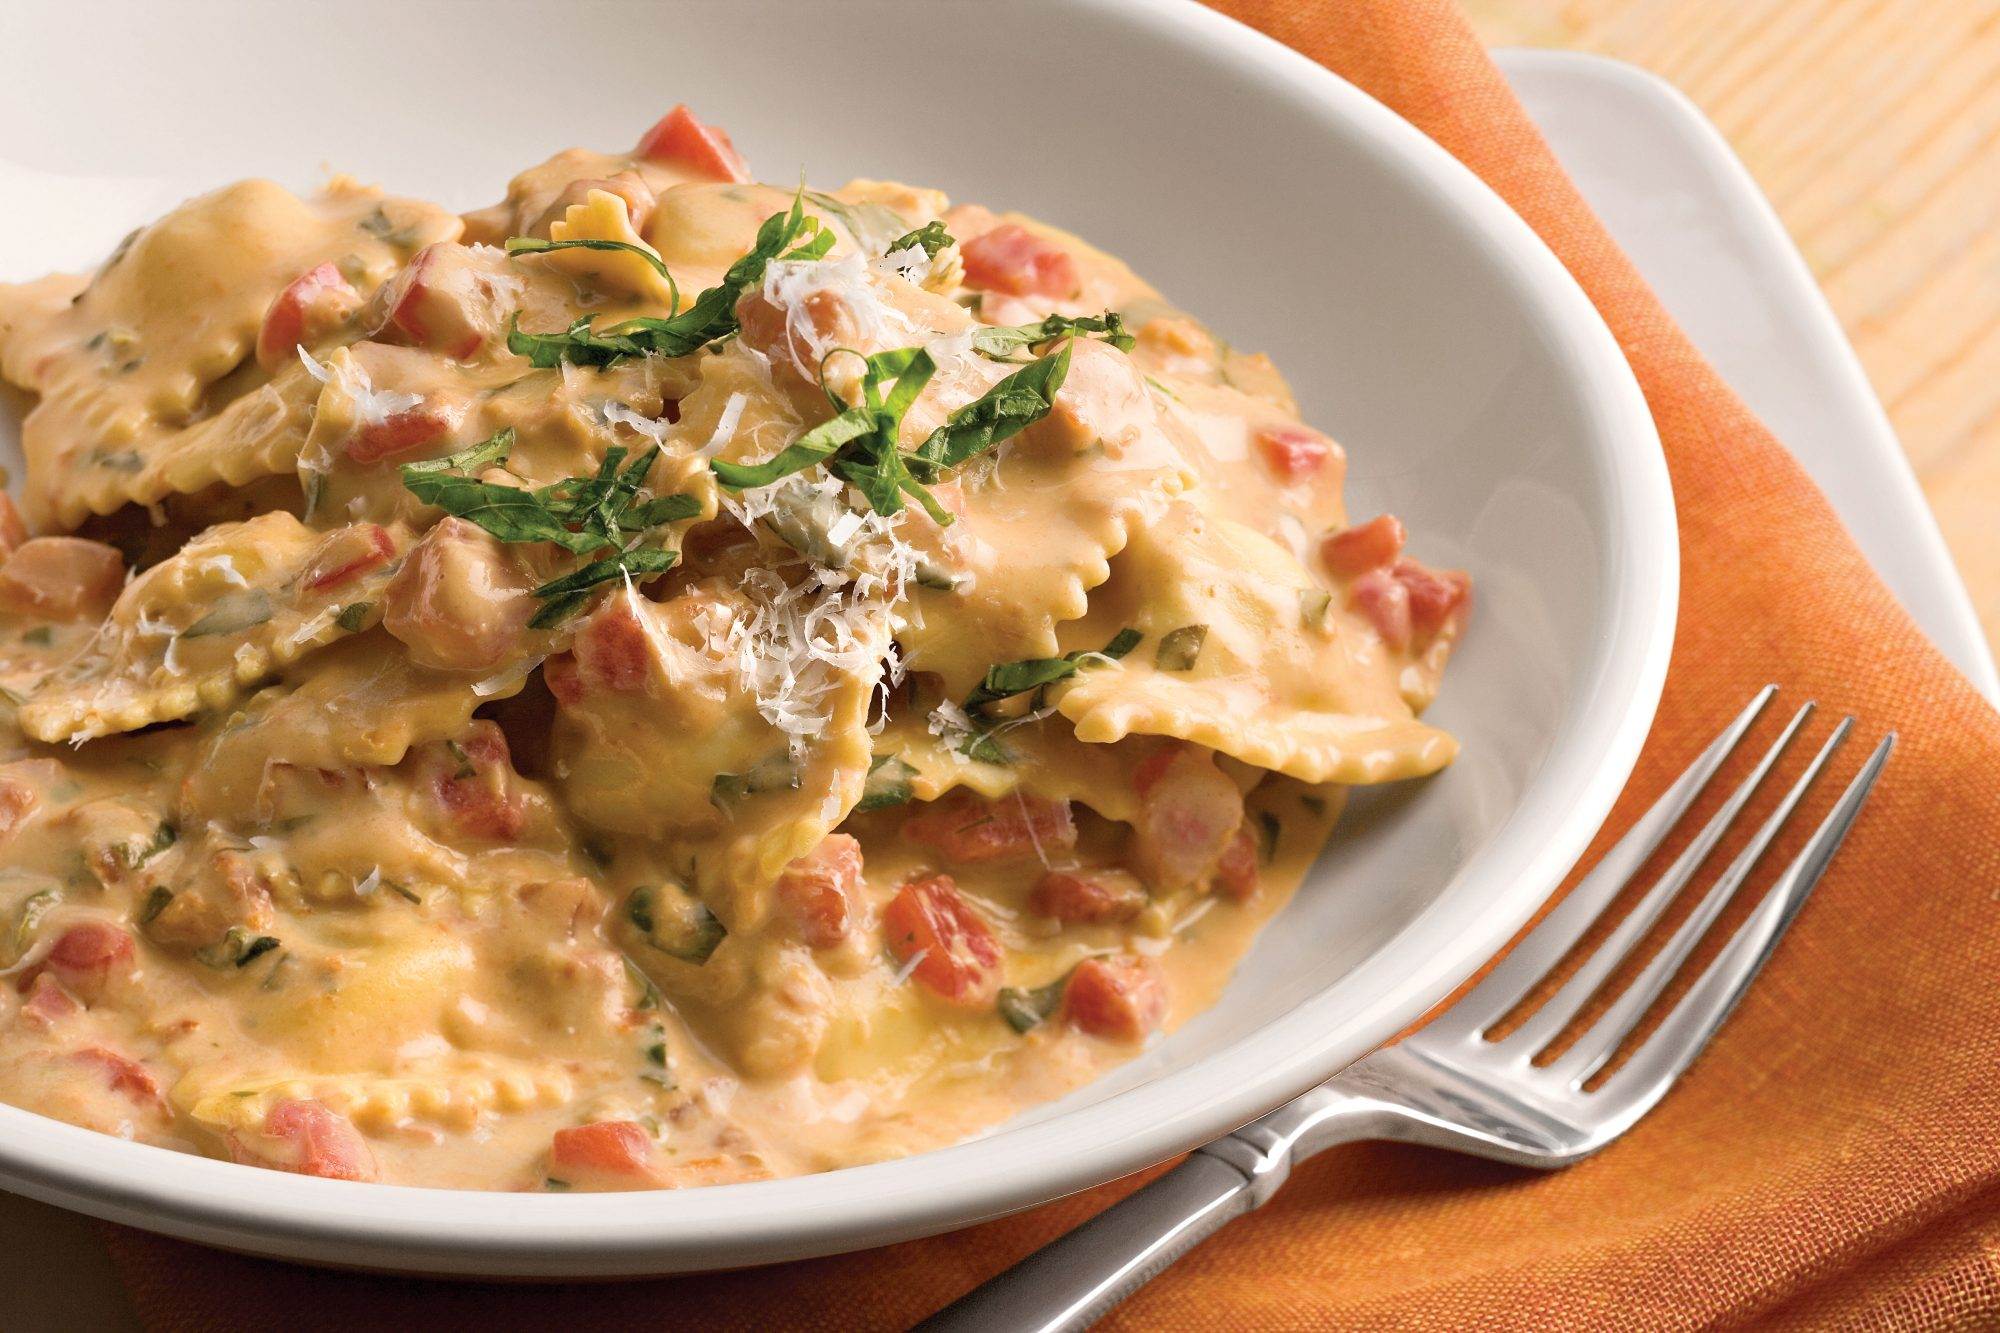 Easy Pasta Recipes: Tuscan Pasta With Tomato-Basil Cream